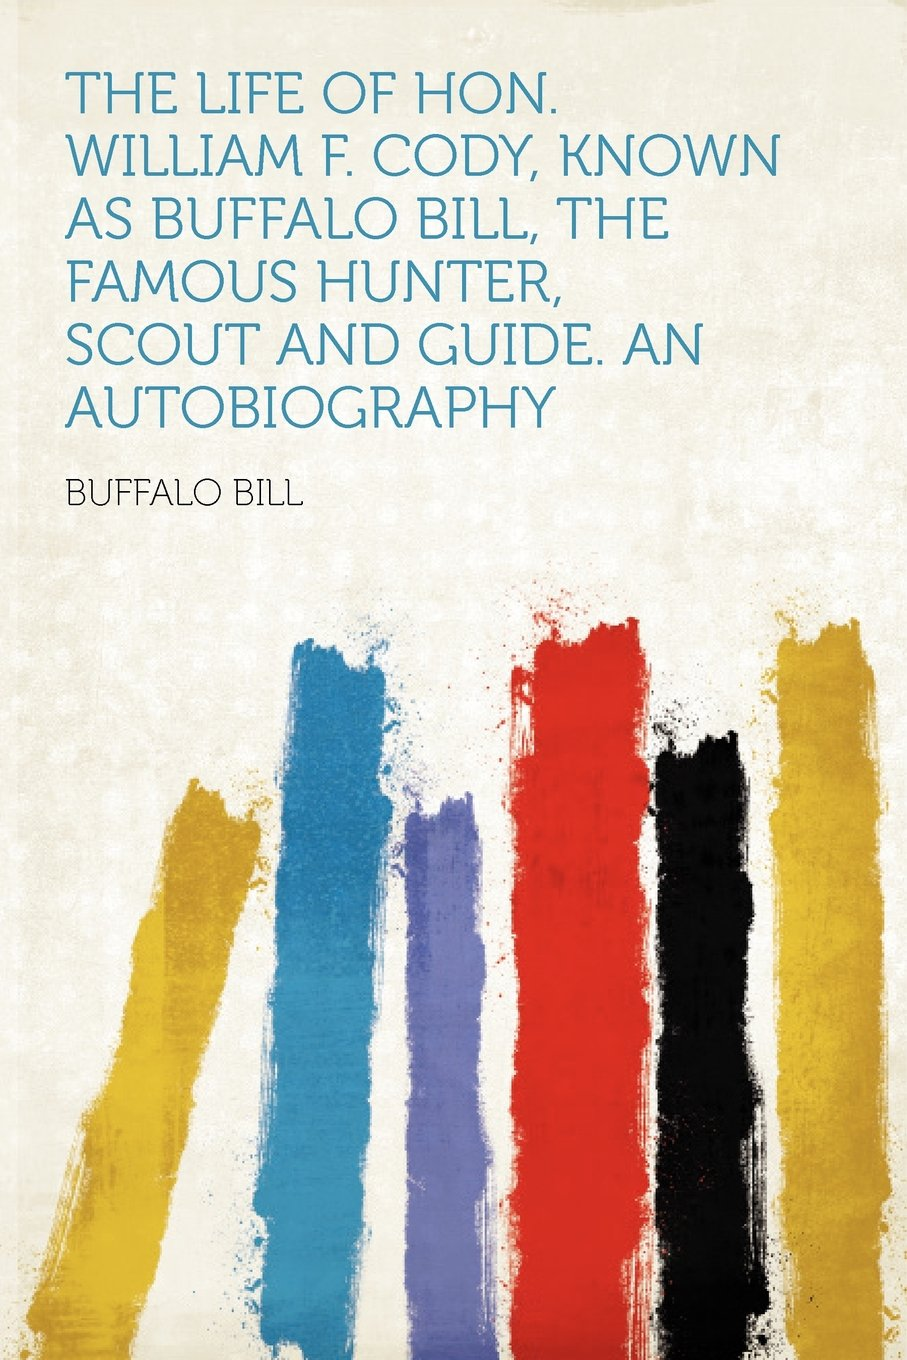 The life of hon. William f. Cody, known as buffalo bill, the.